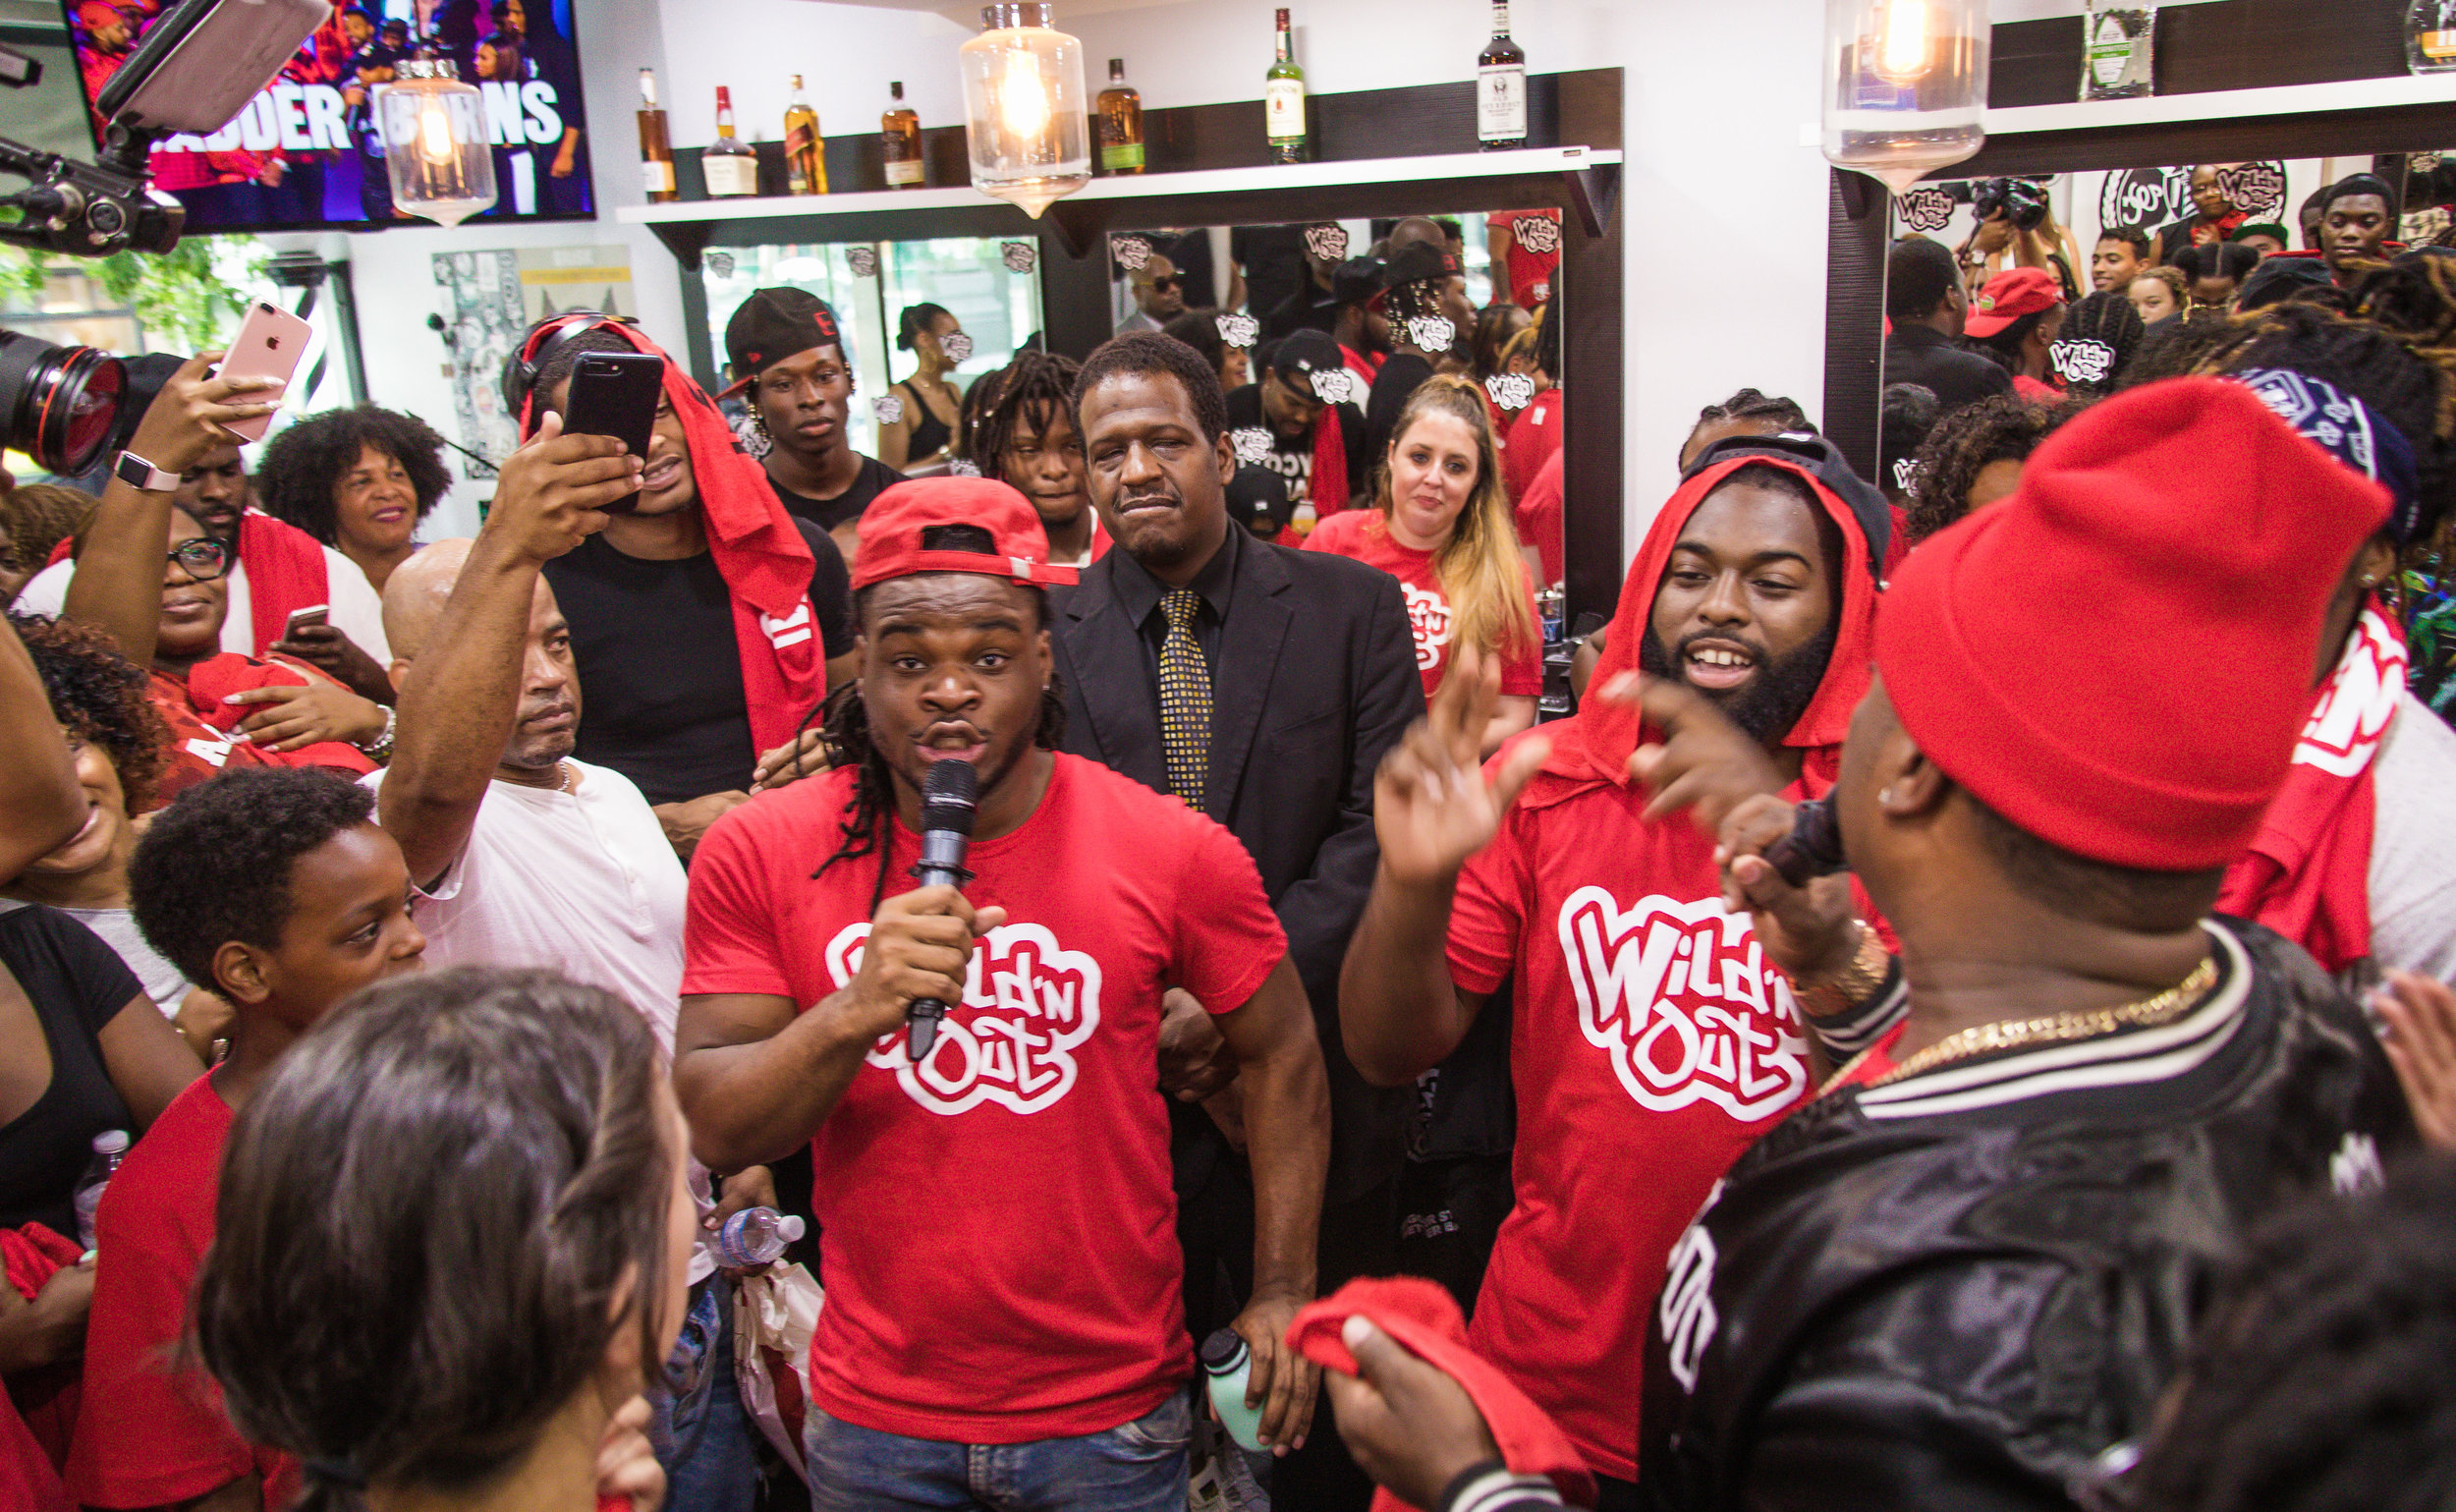 Wildn out-14.jpg